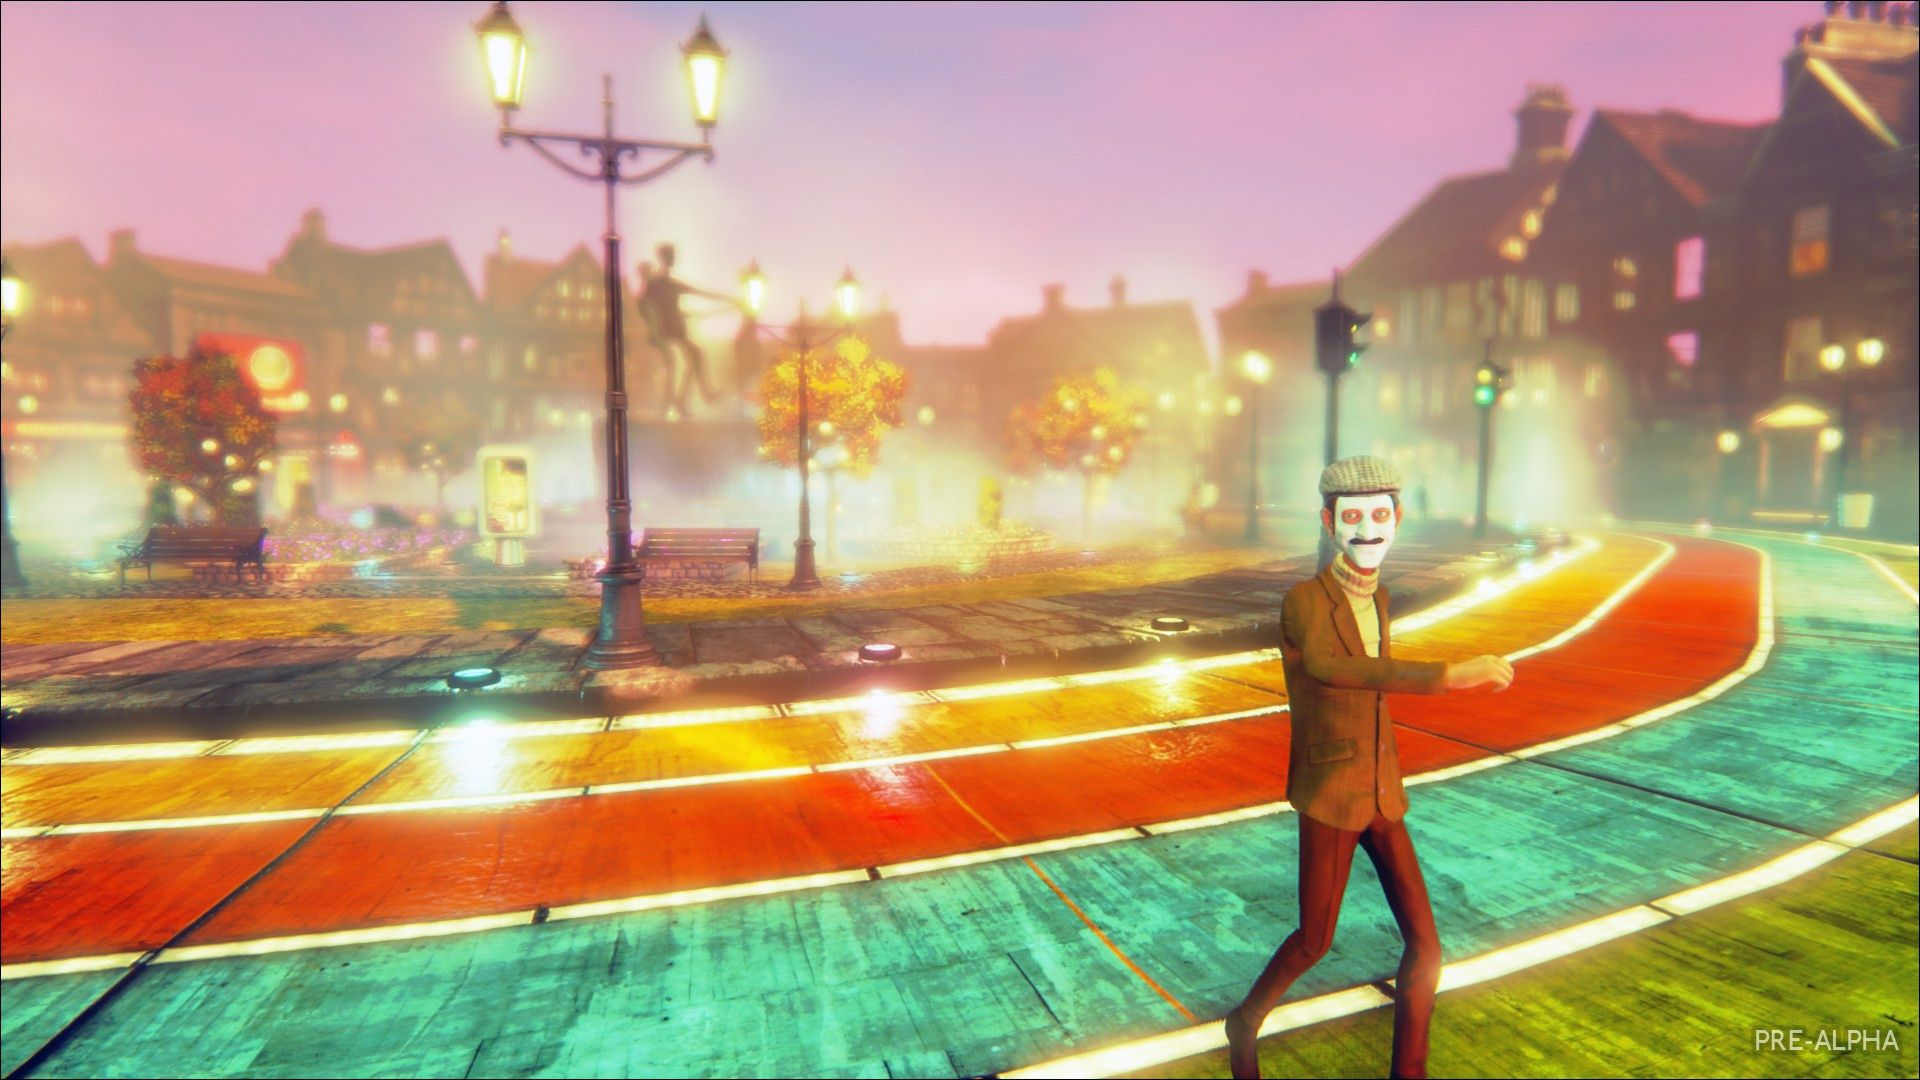 New We Happy Few Trailer Details Revamped Characters & Game Play Mechanics